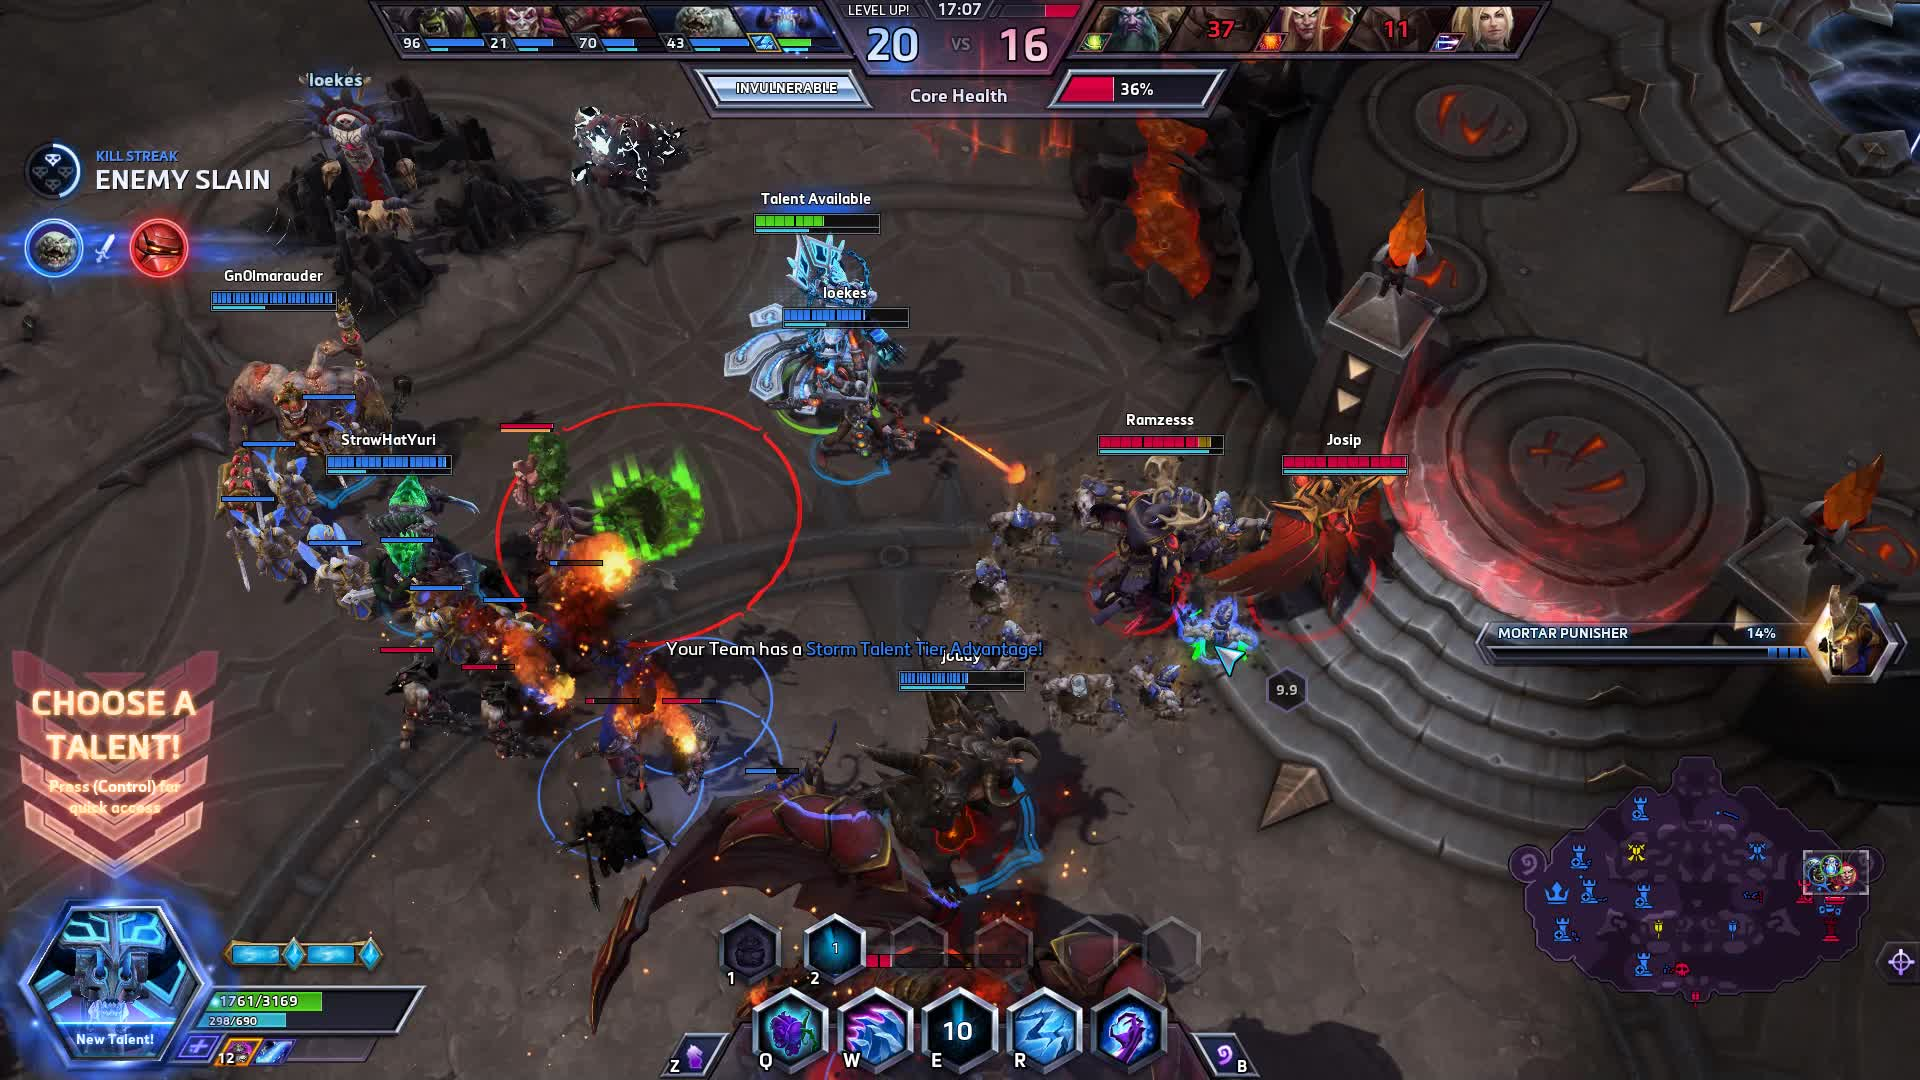 heroesofthestorm, vlc-record-2018-12-05-03h28m09s-Heroes of the Storm 2018.12.05 - 03.27.54.41.DVR.mp4- GIFs